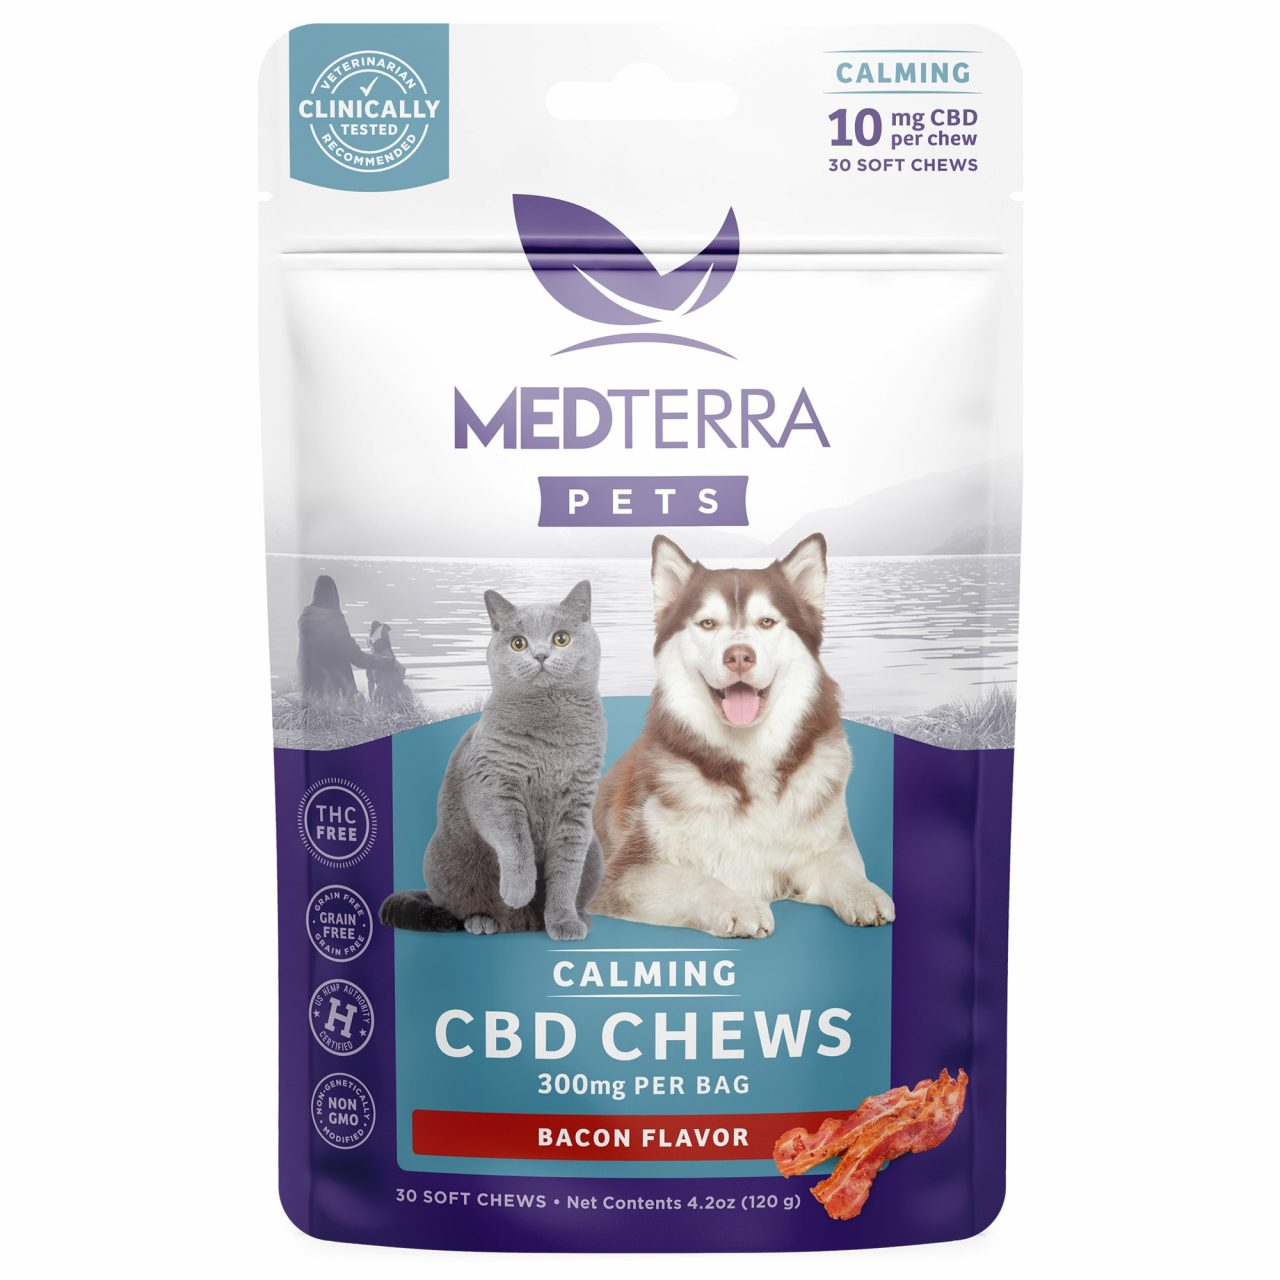 Medterra, Calming CBD Chews for Dogs & Cats, Isolate THC-Free, Bacon, 30ct, 300mg CBD 1